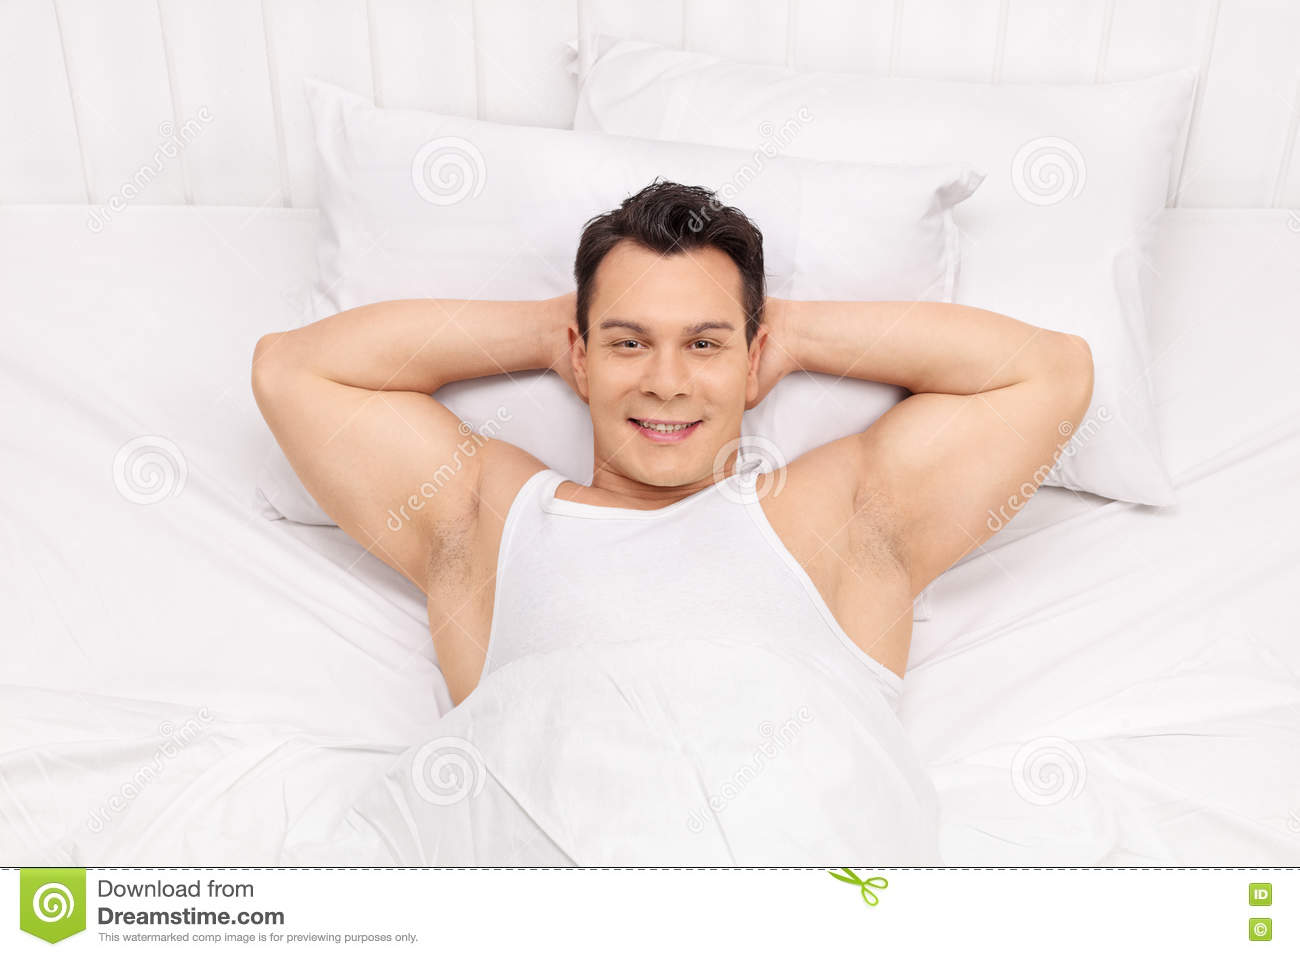 top view of a joyful man laying on bed stock photo - image: 70896734